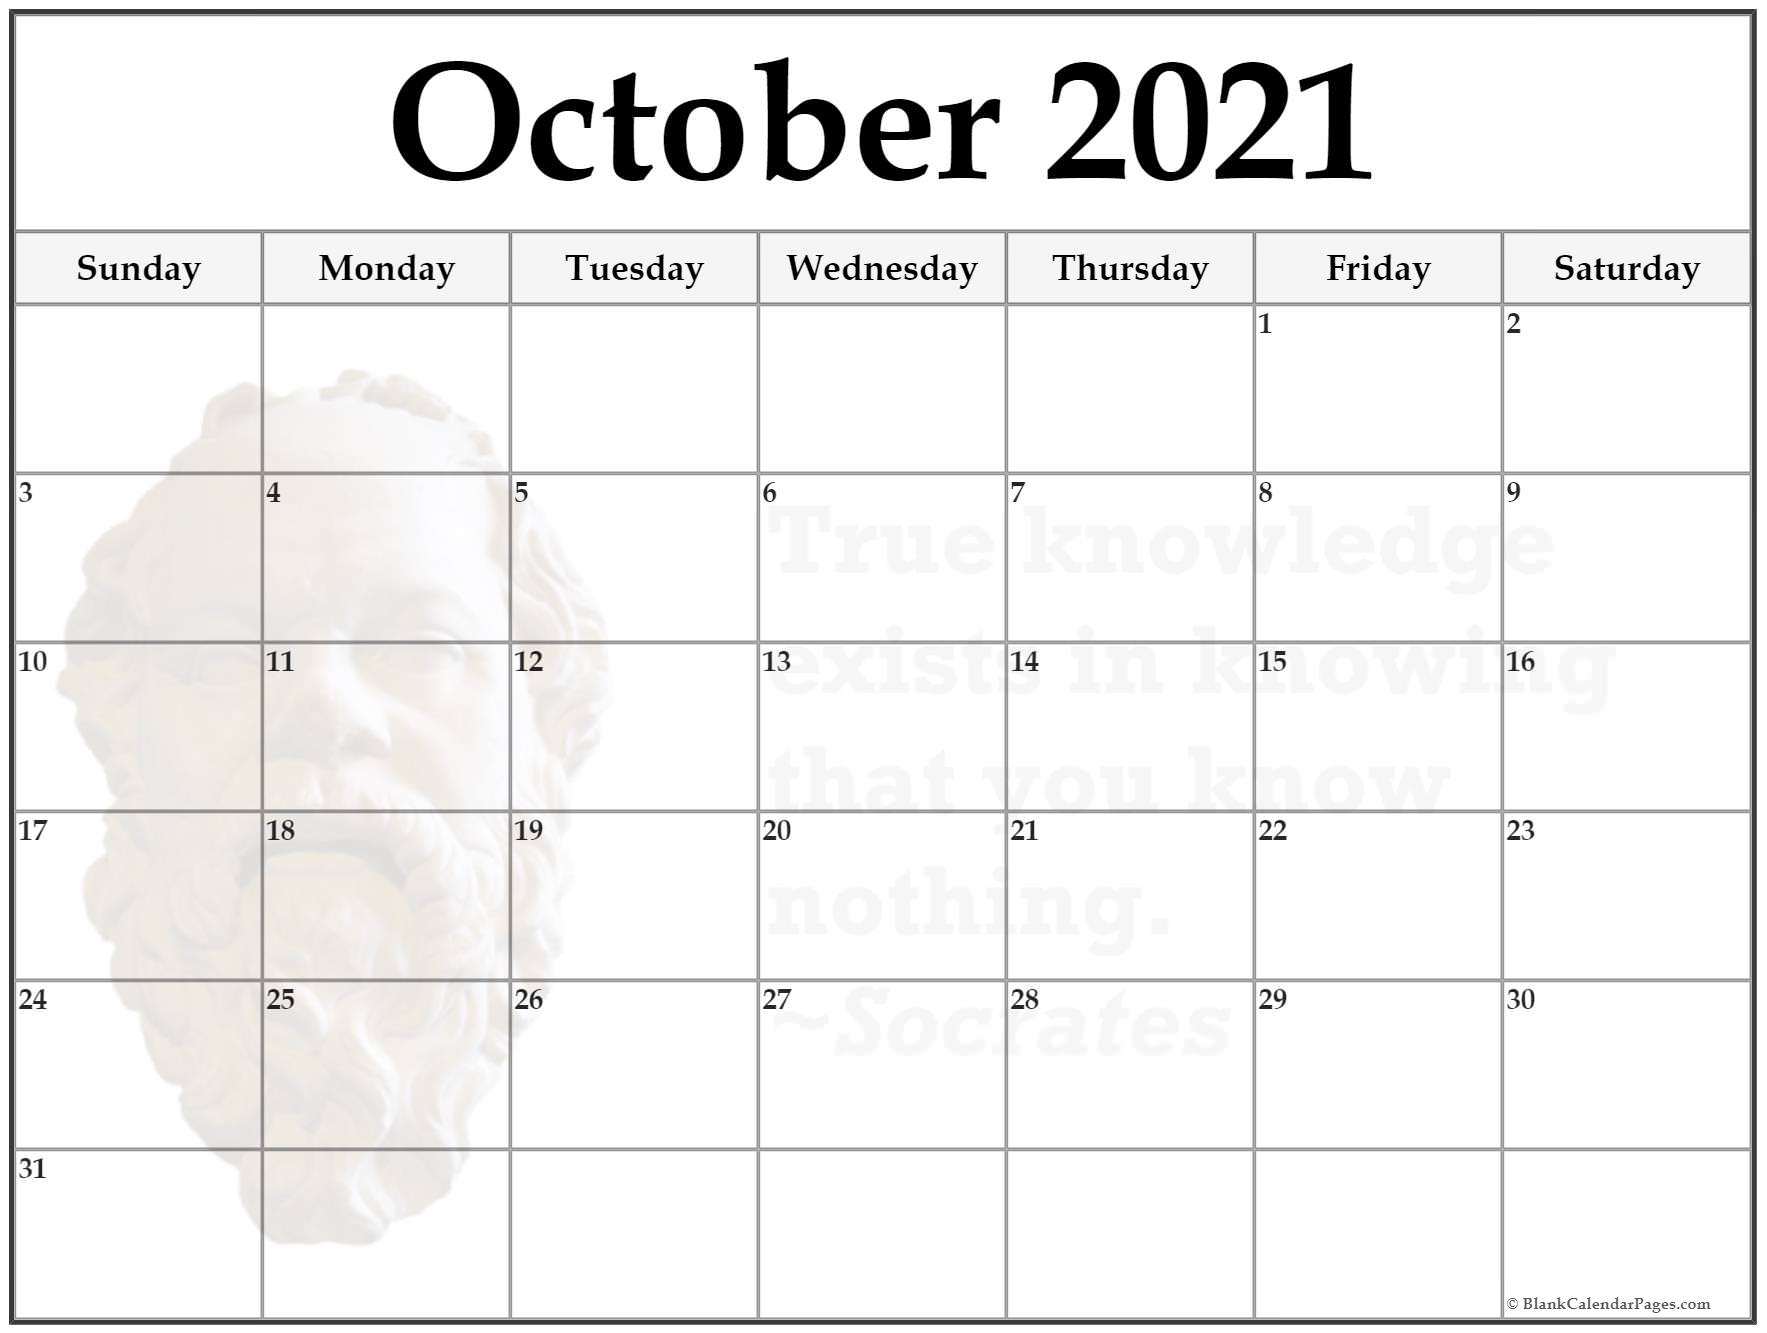 October 2020 with socrates sayings. True knowledge exists in knowing that you know nothing. ~Socrates